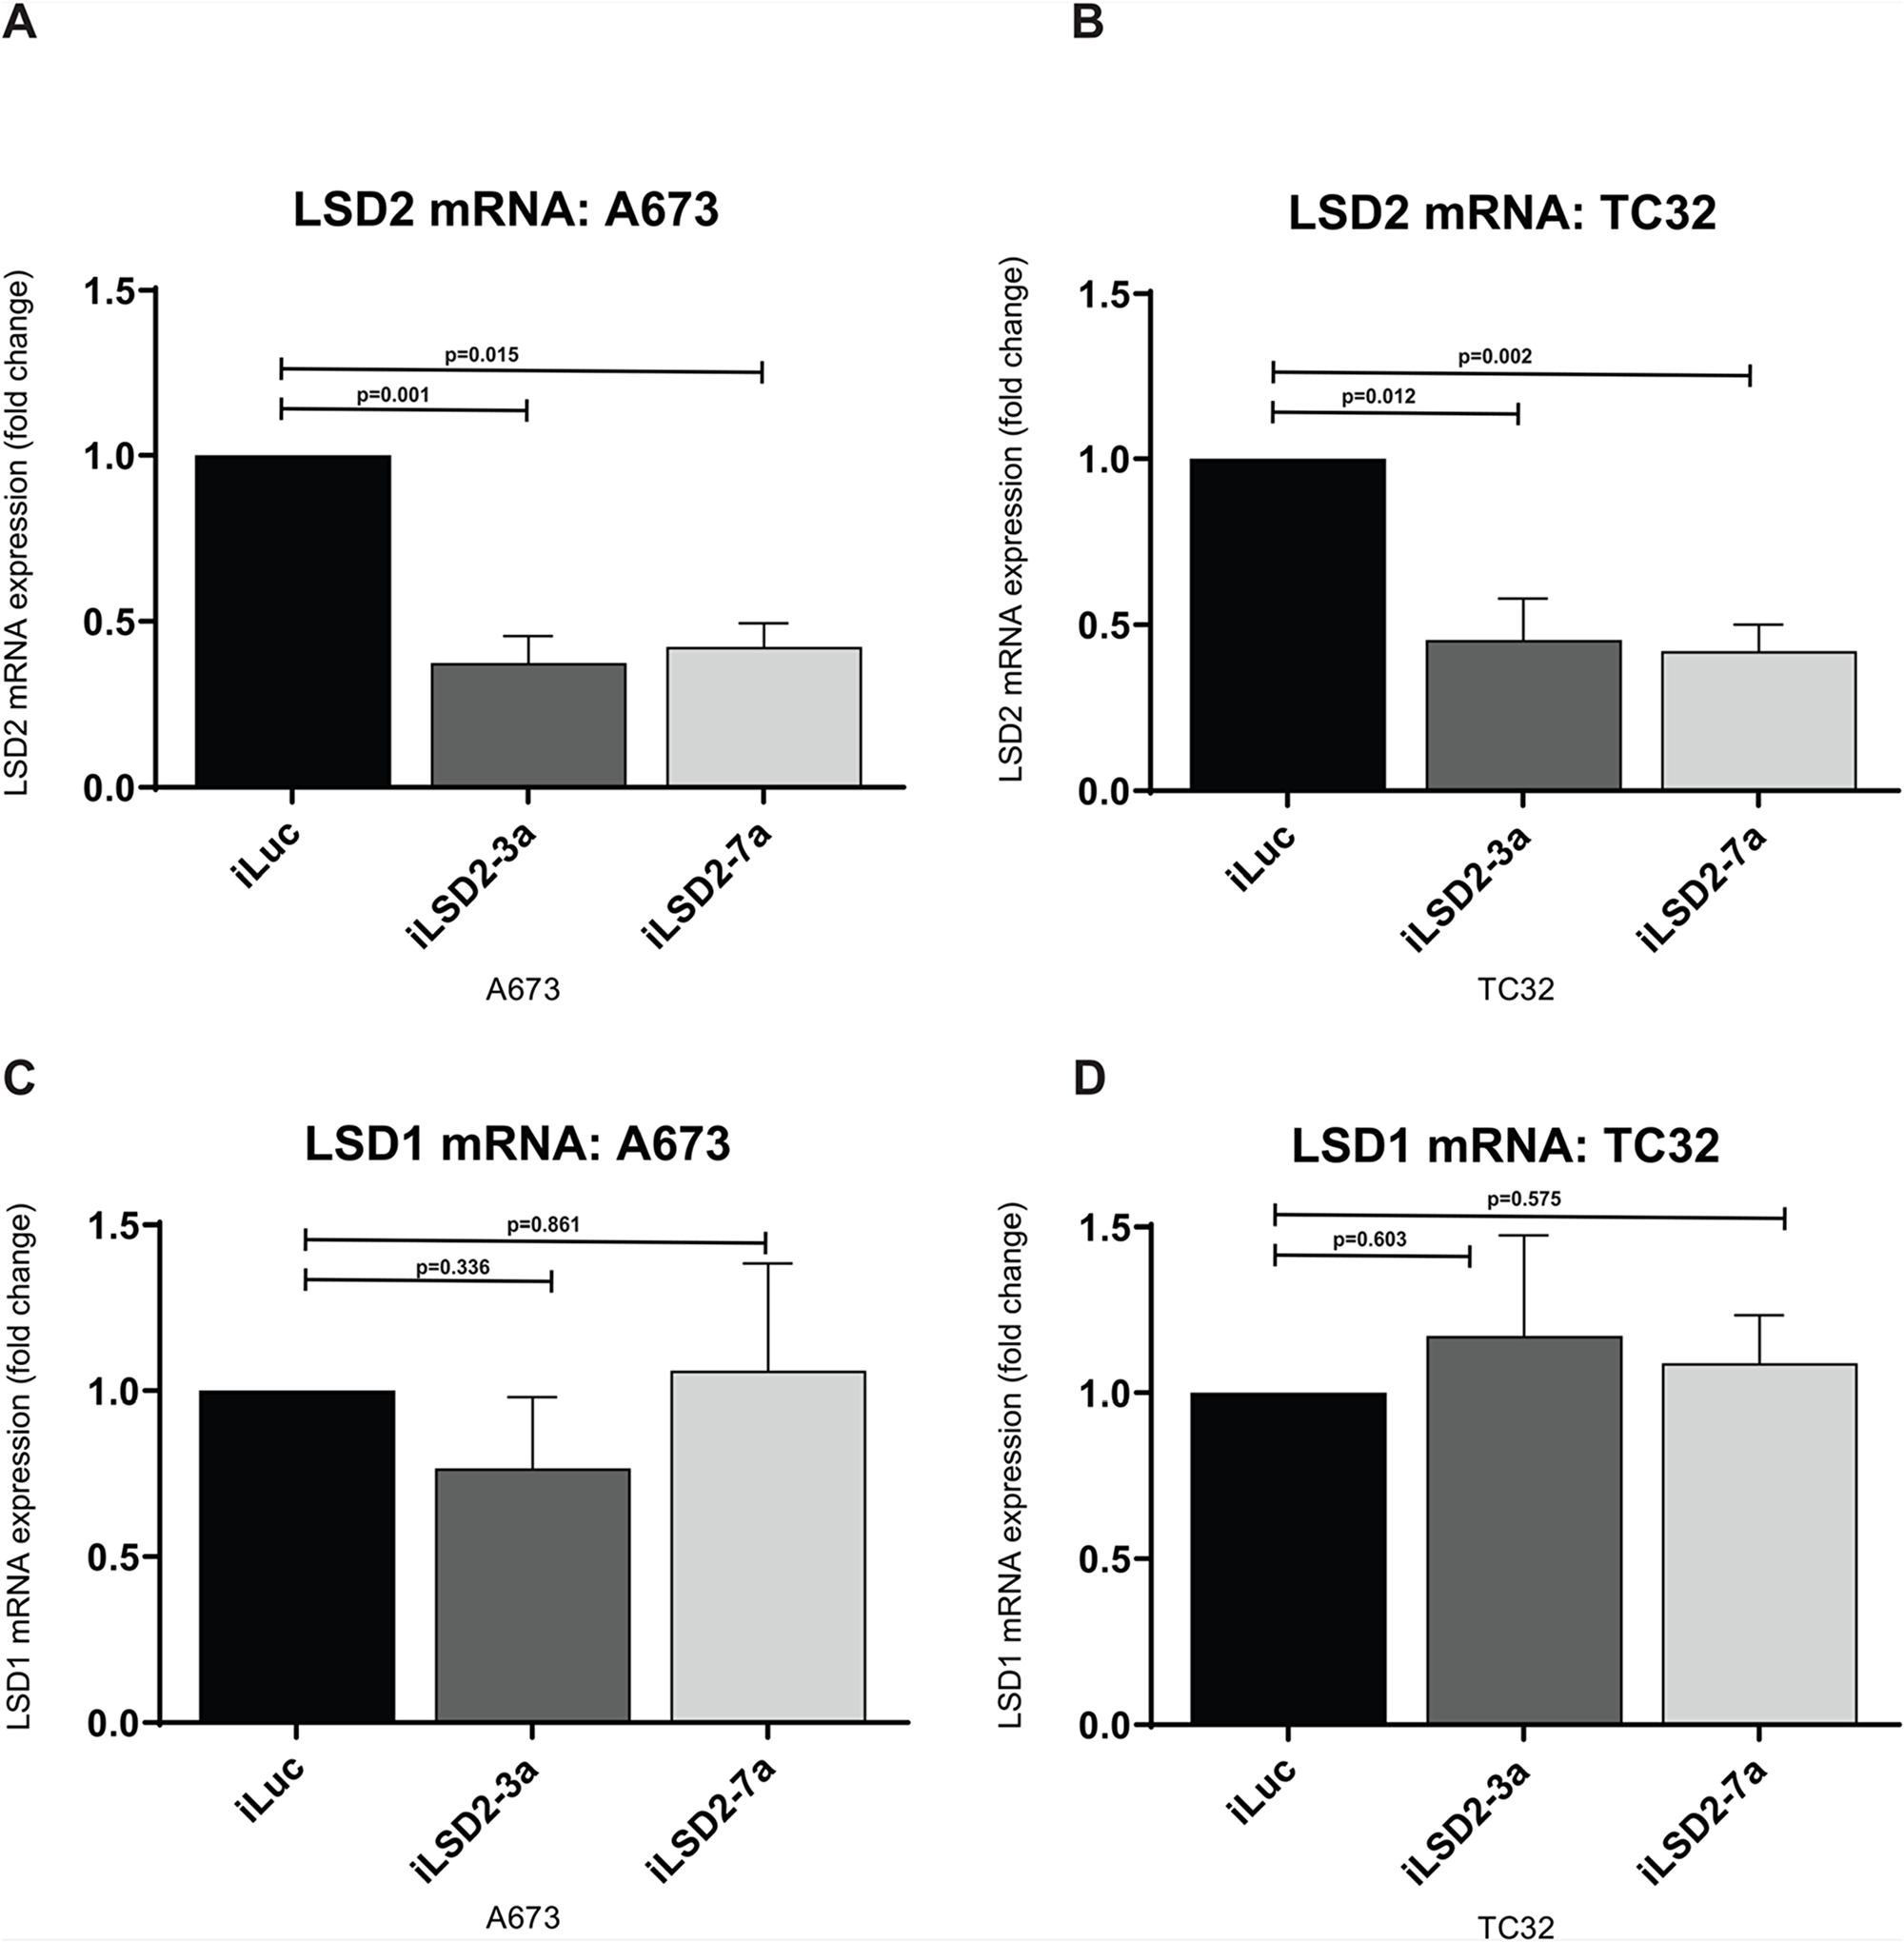 LSD2 mRNA expression decreased after retroviral infection with shRNAs.